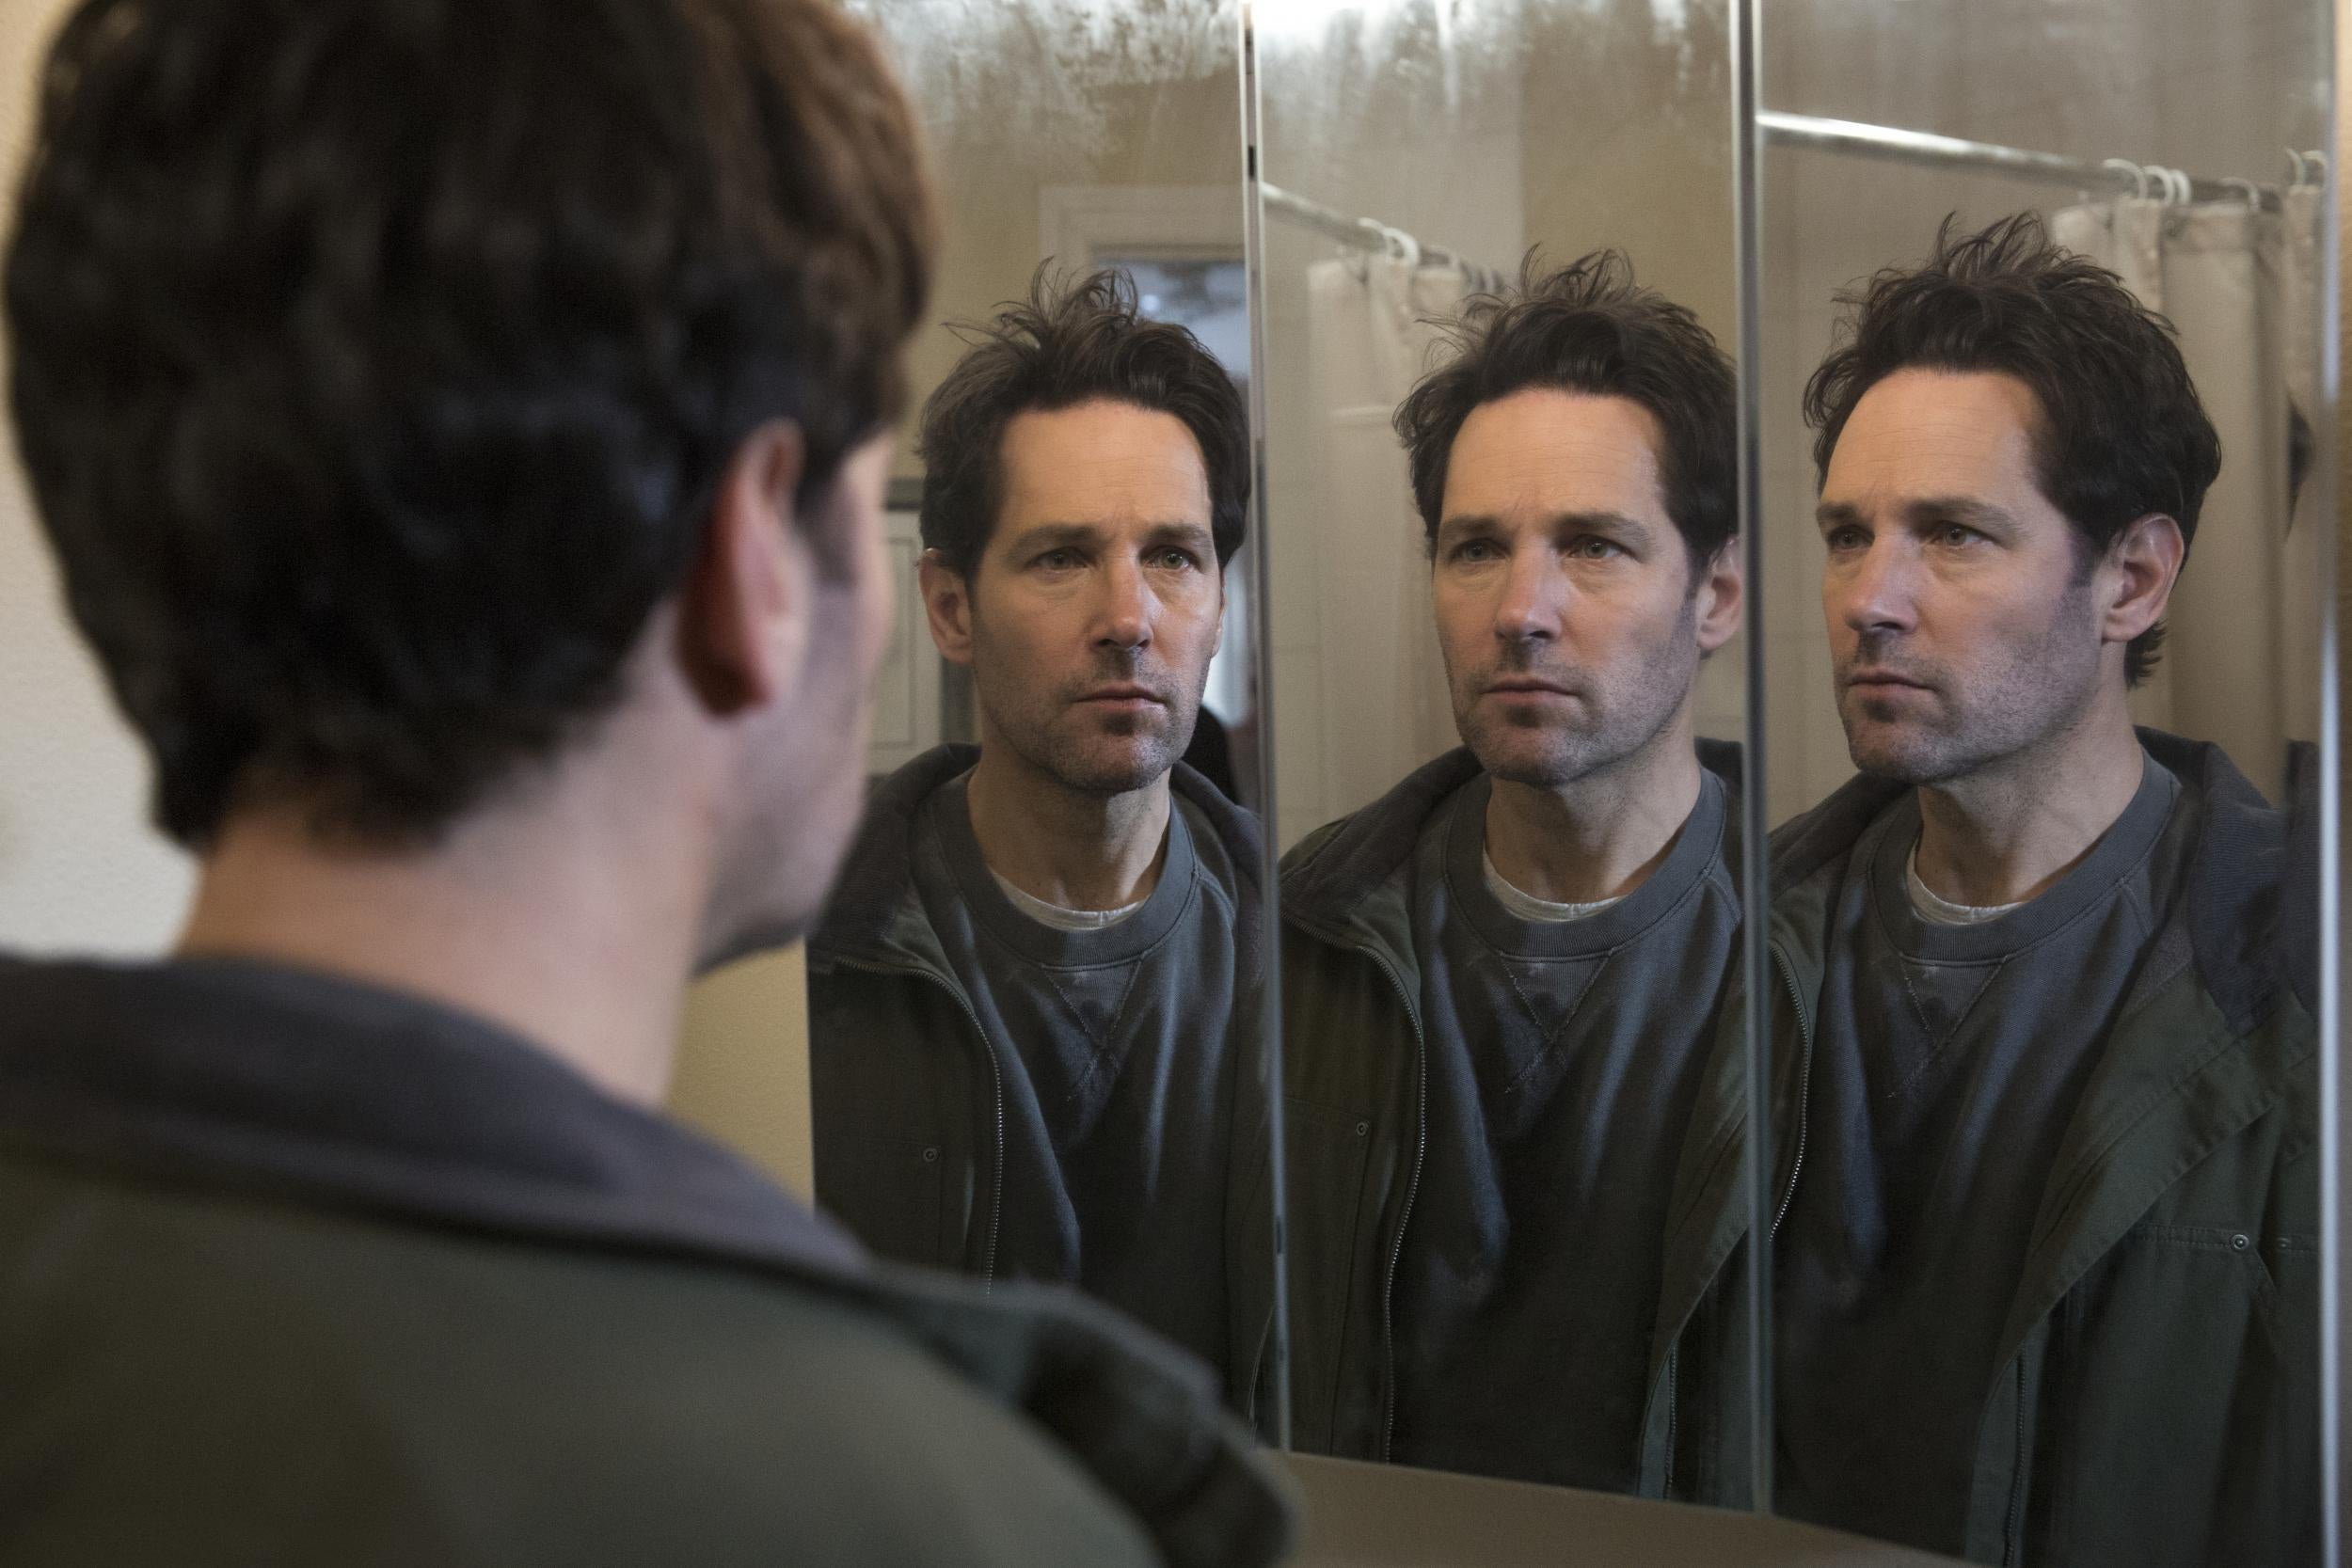 Living with Yourself review: Paul Rudd bites off more than he can chew in Netflix's high-concept comedy